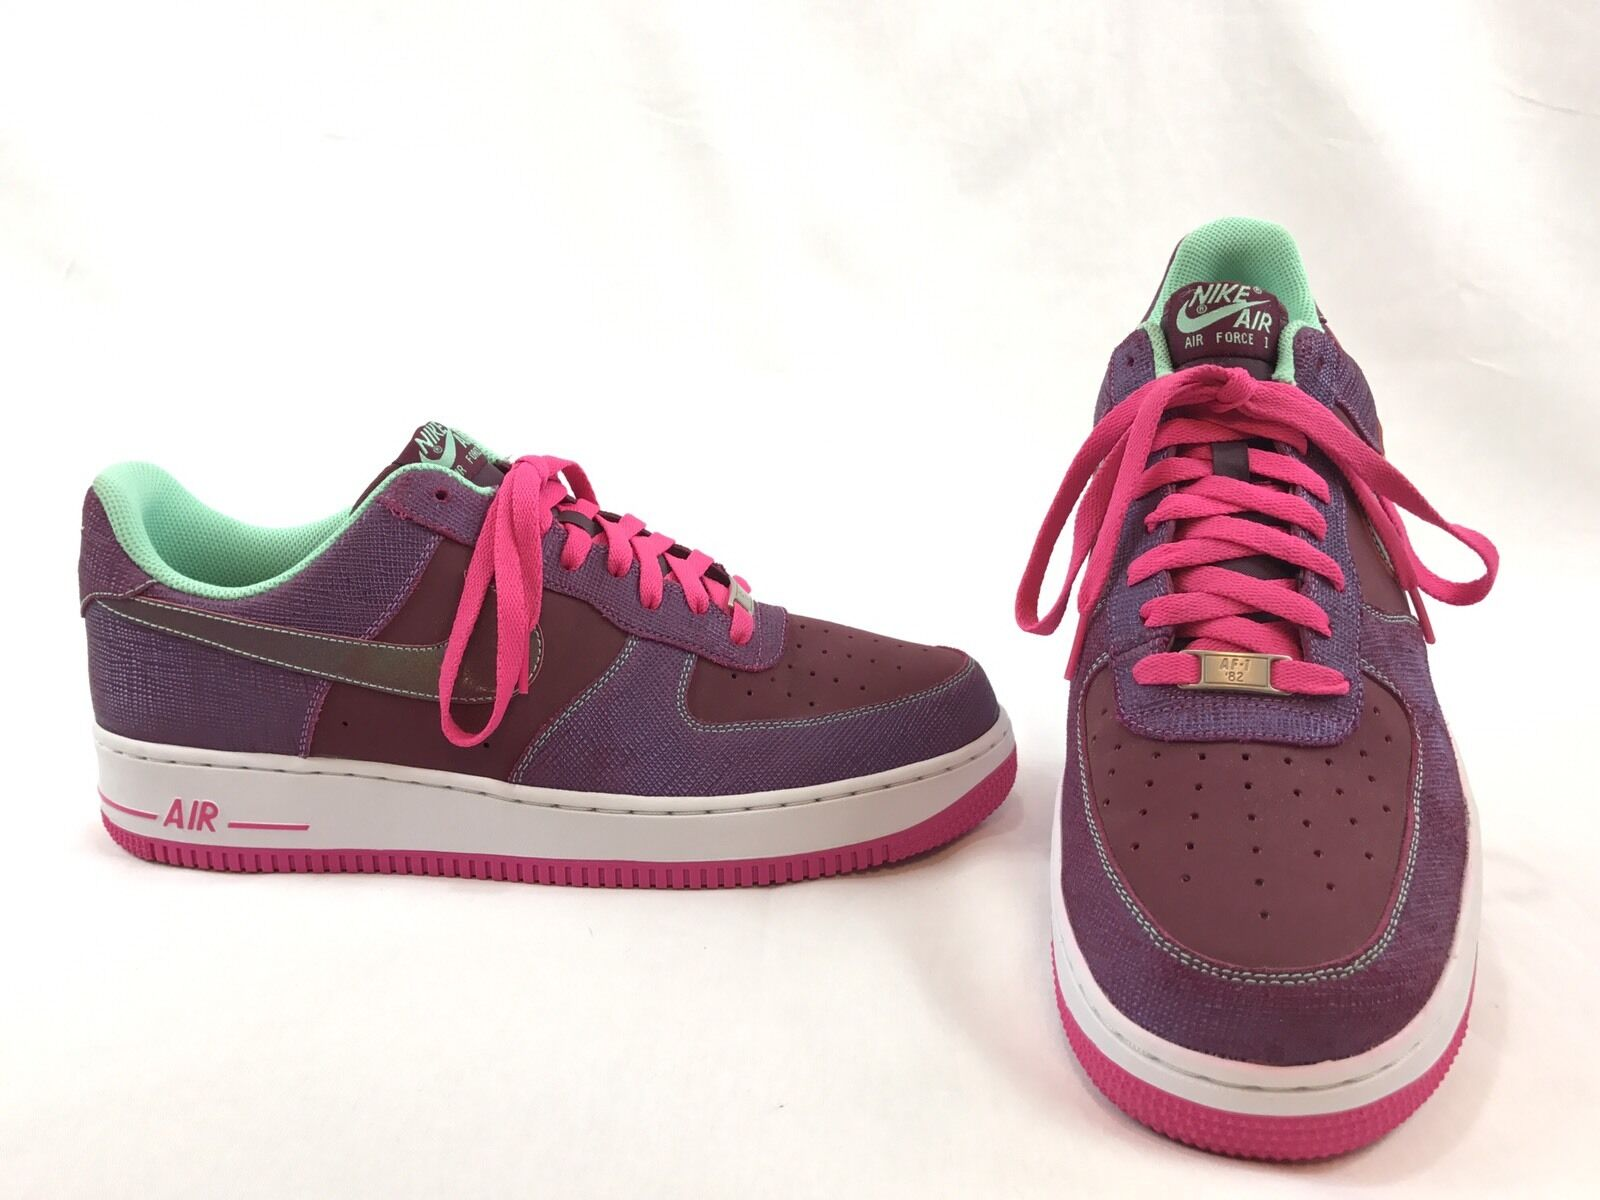 Nike Air Force 1 Cherrywood Mens 488298-614 Red Green Pink Low Shoes Size 13